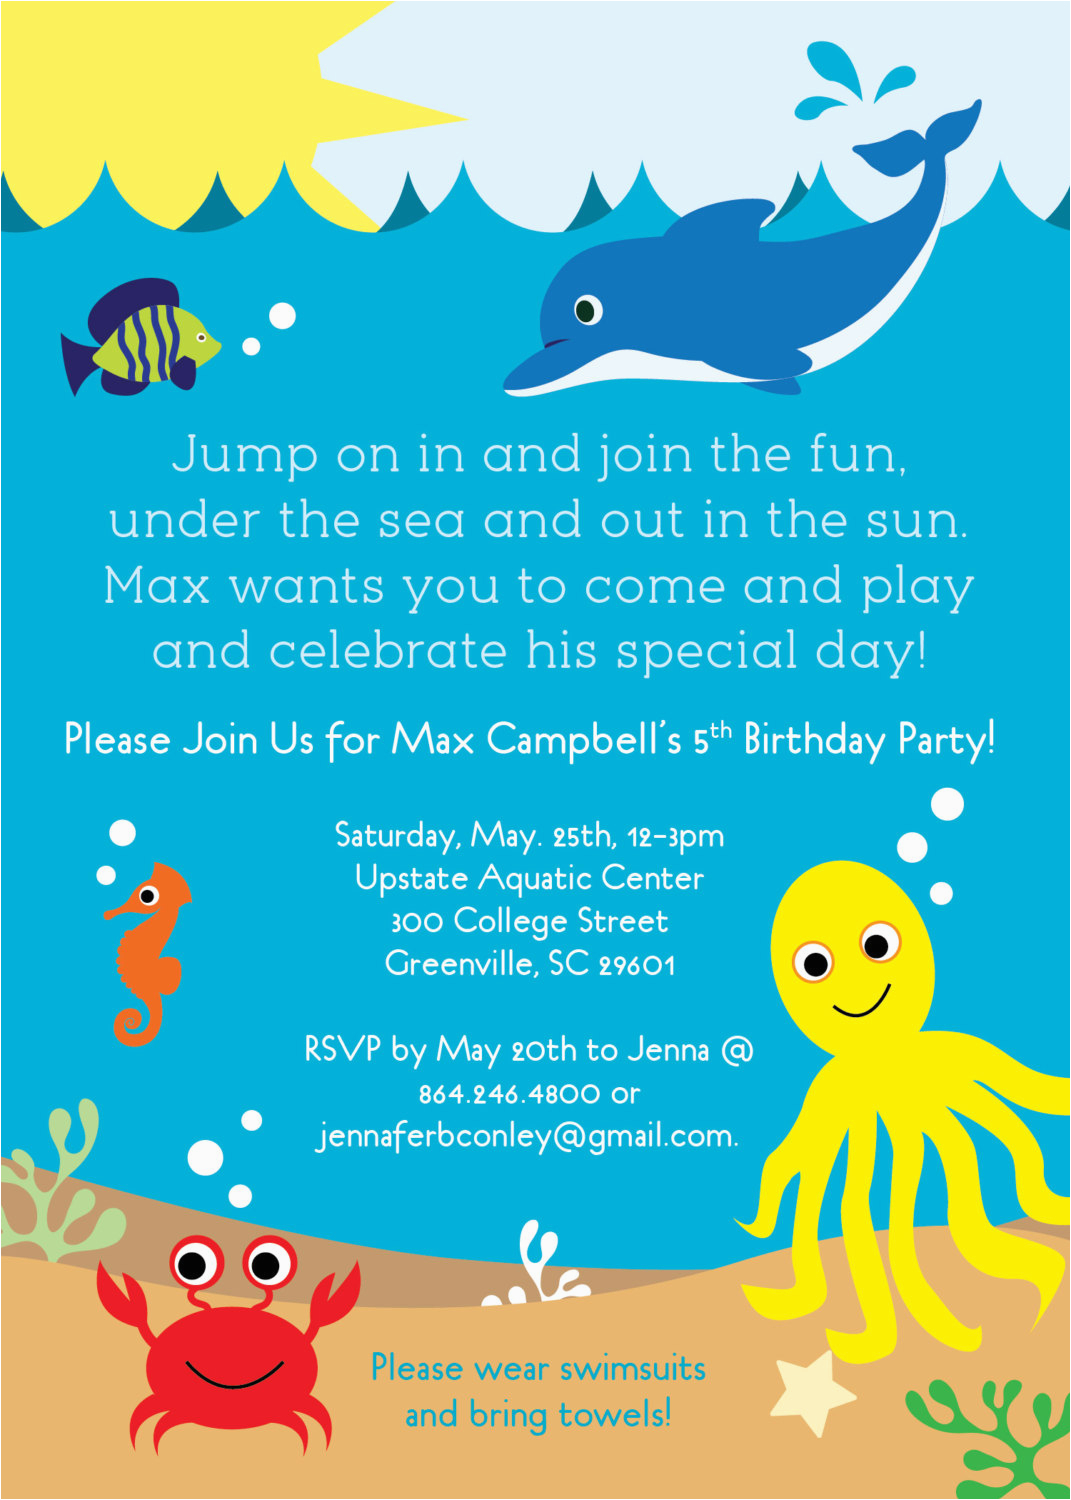 6810094 under the sea birthday party invitations boy or girl sea life creatures